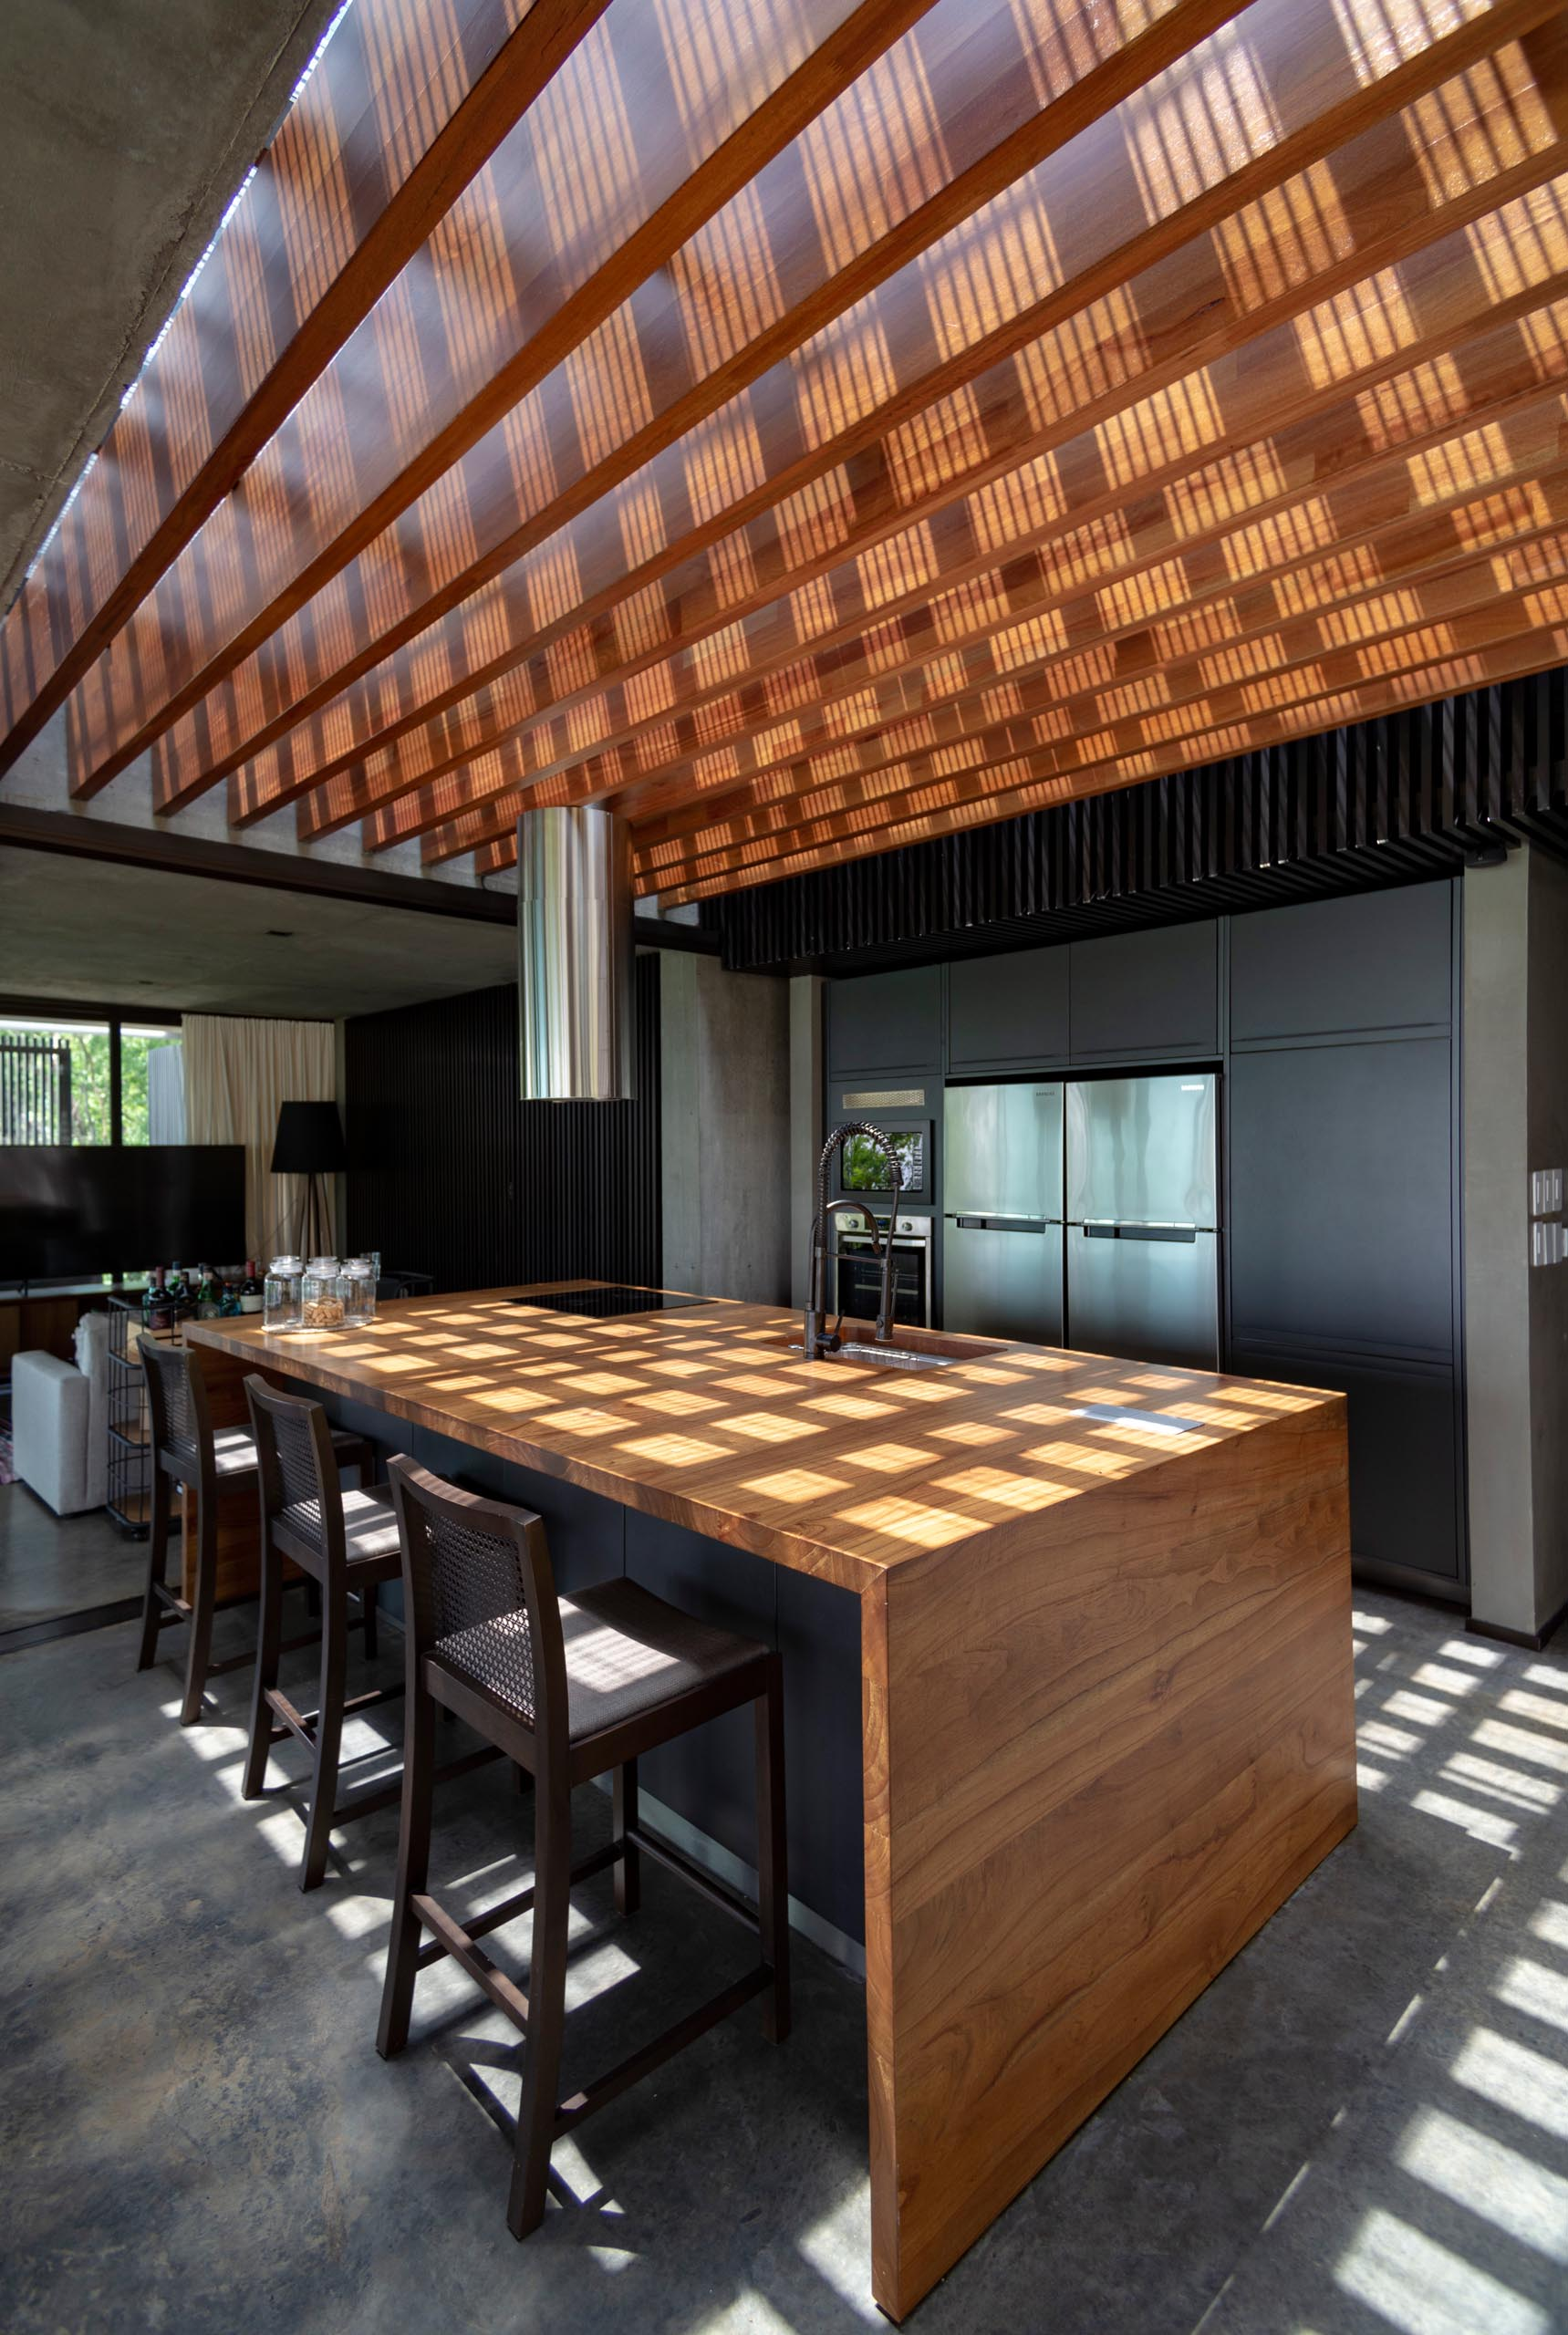 A modern kitchen with minimalist black cabinets and an oversized wood island.